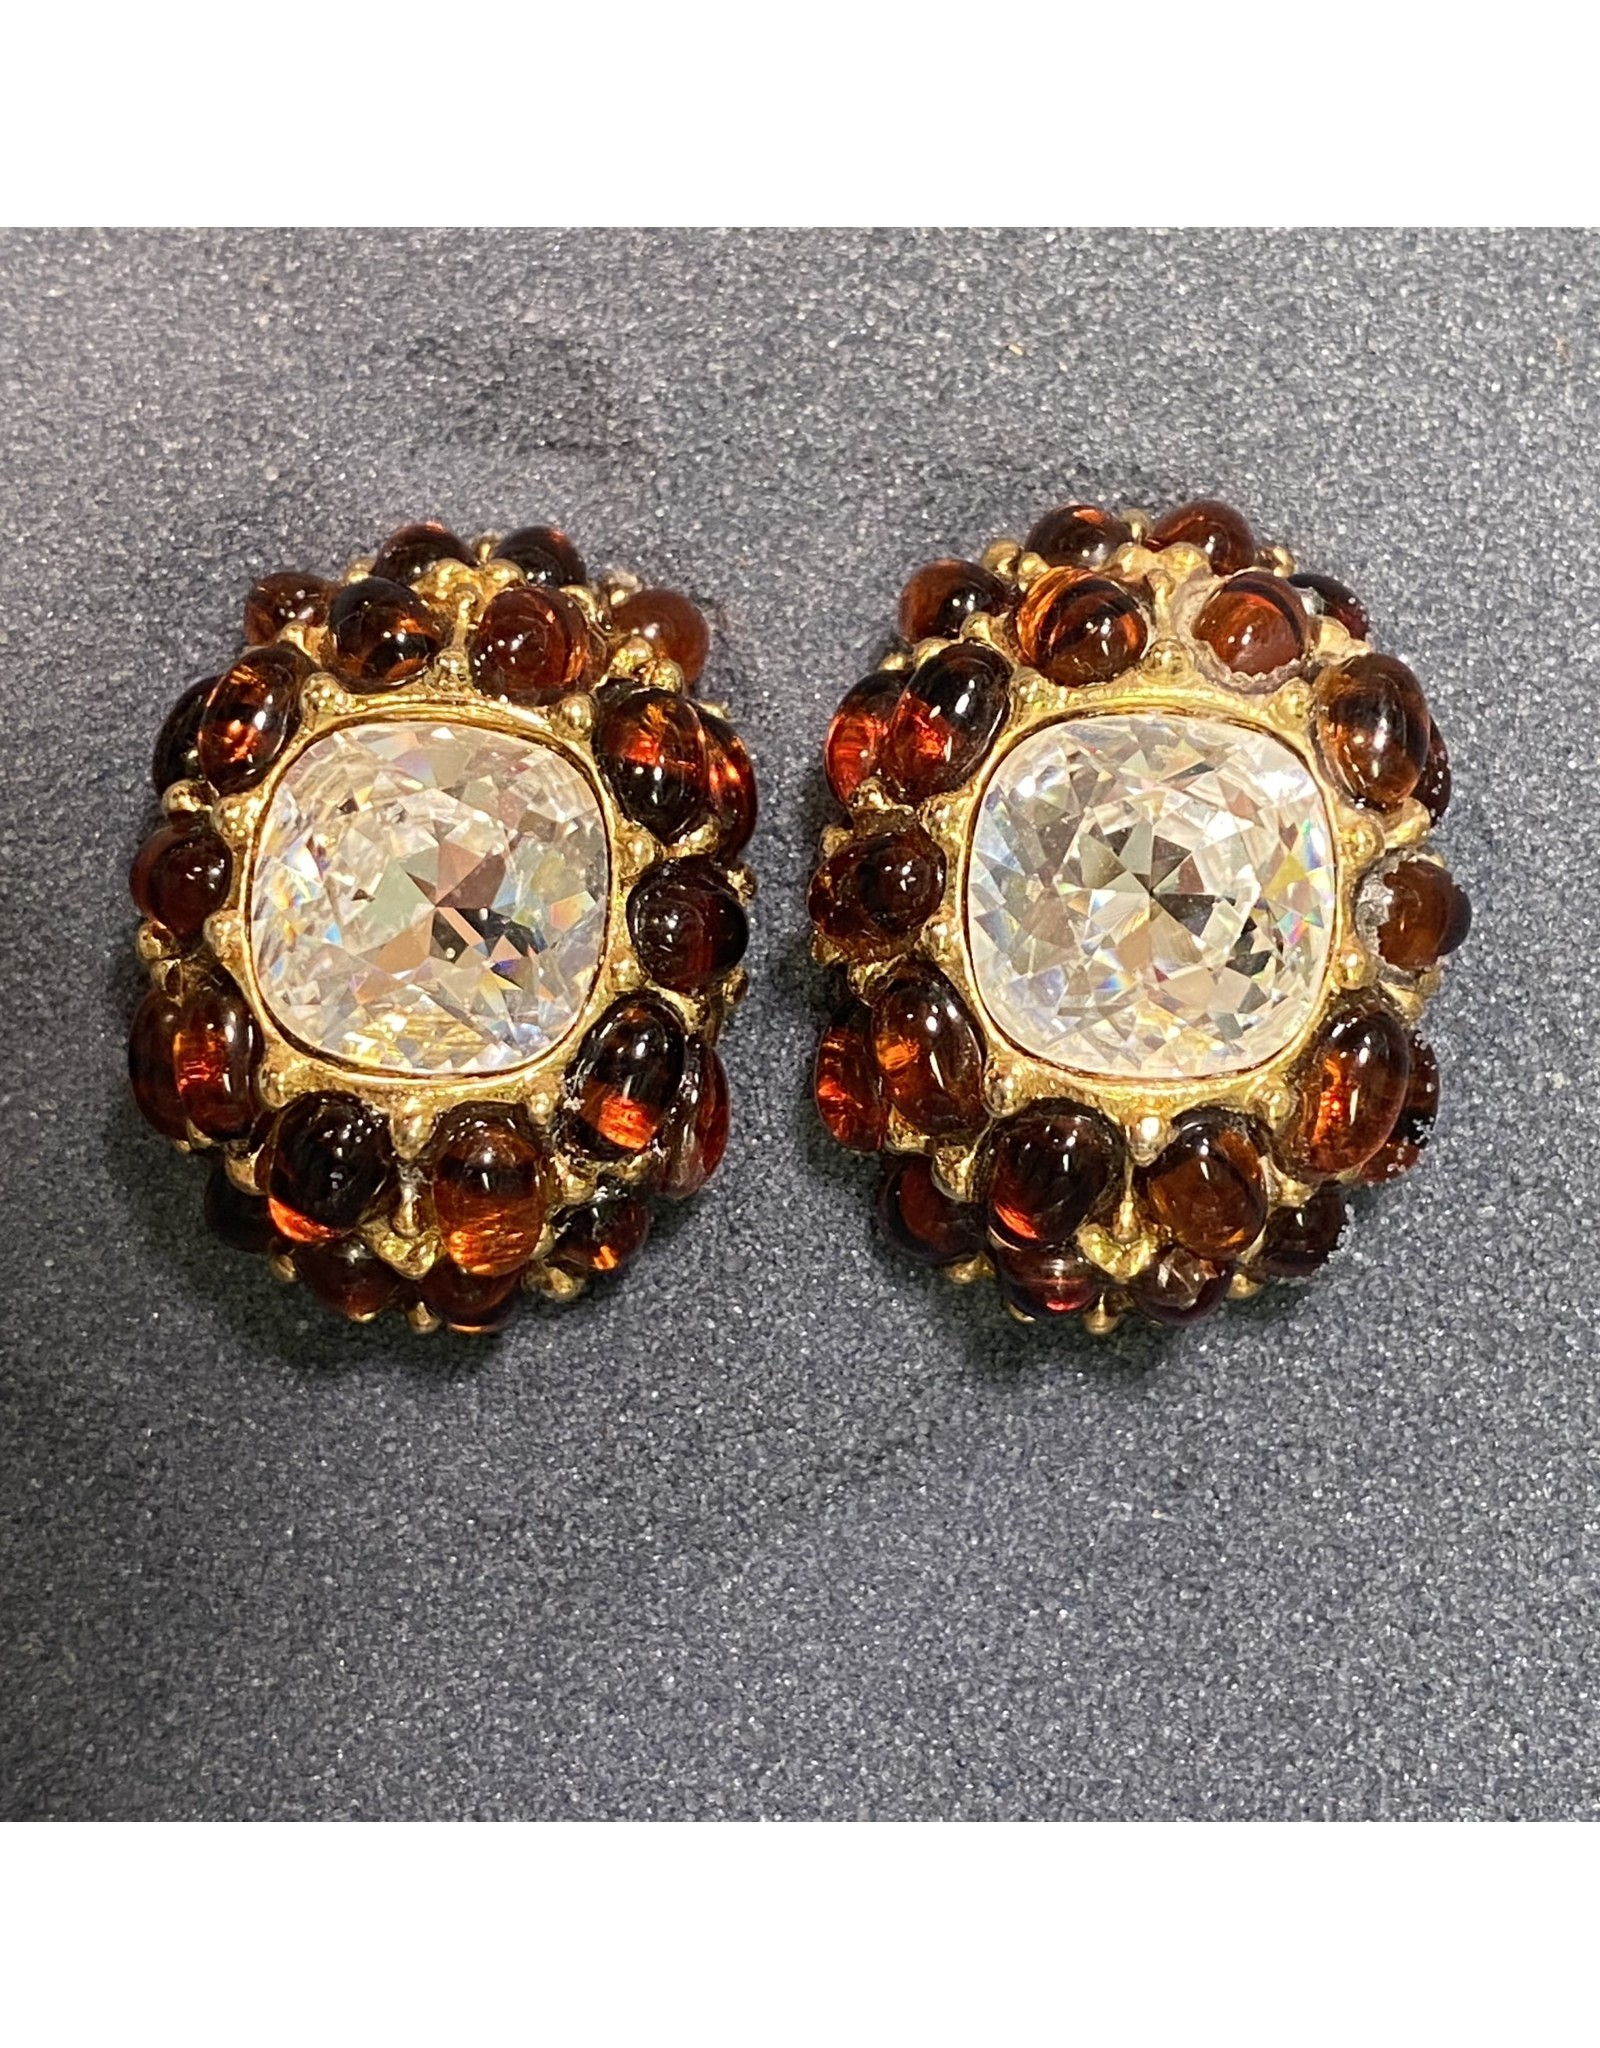 Kenneth Jay Lane Gold w/ Large Crystal and Amber Clip Earrings